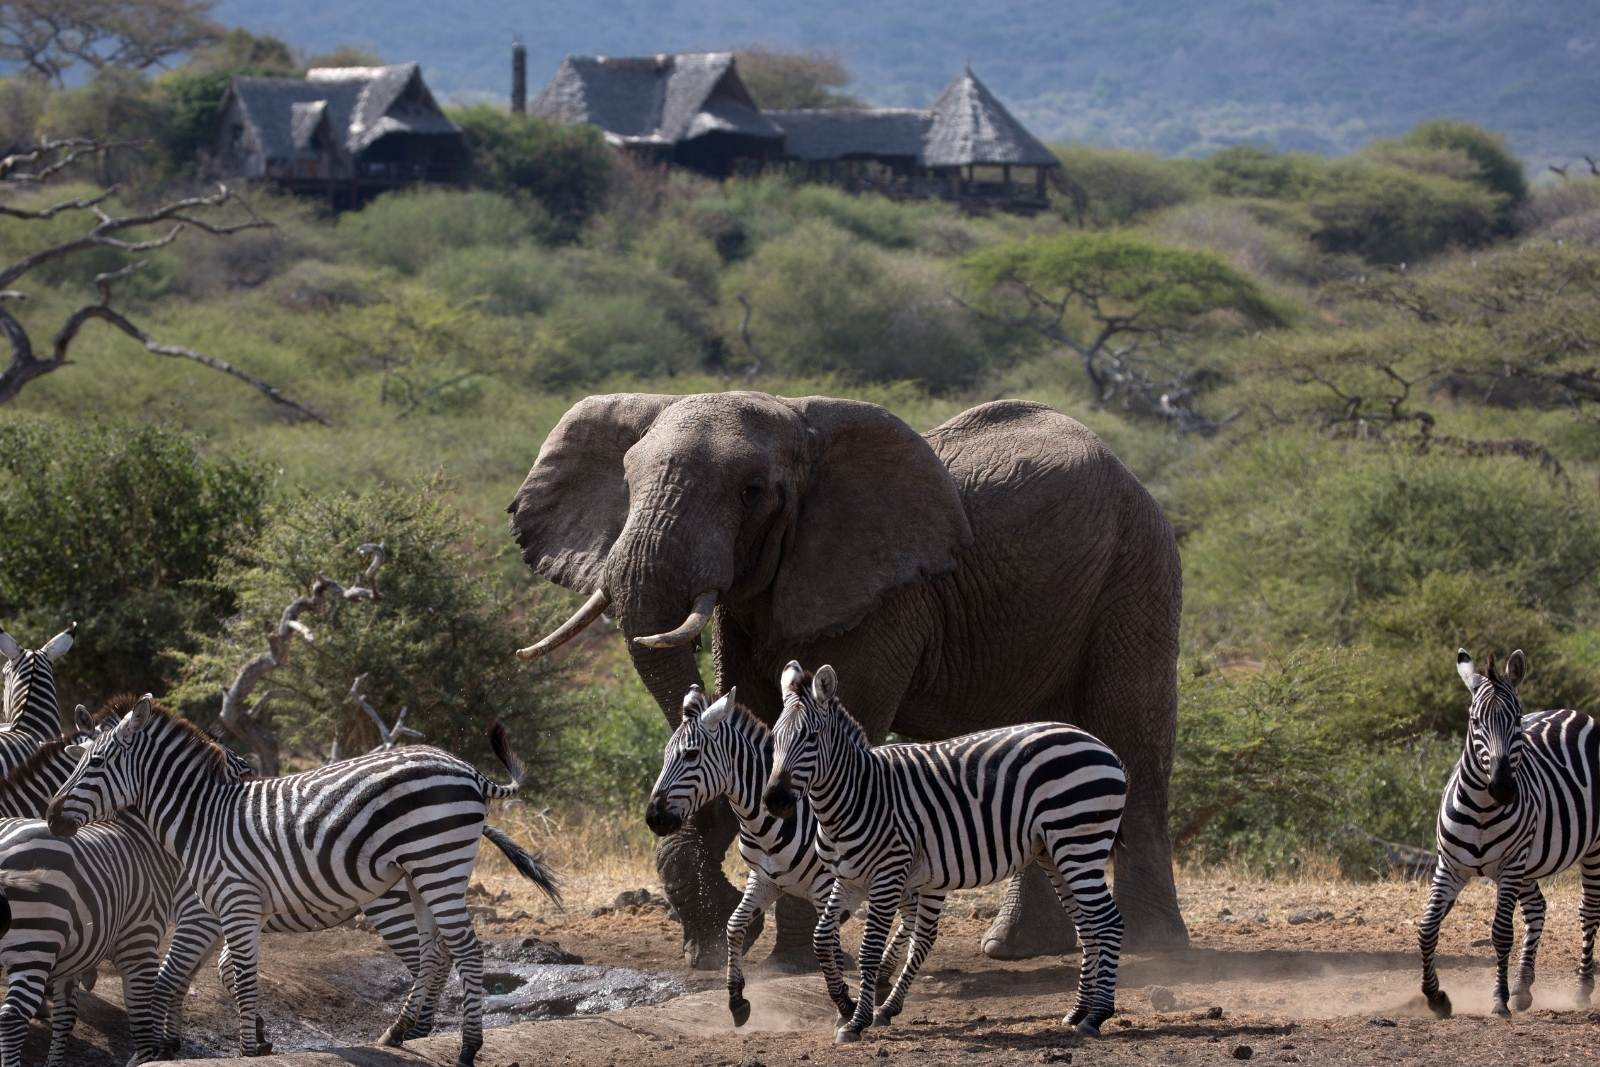 Choosing the right safari activities that fall under your budget